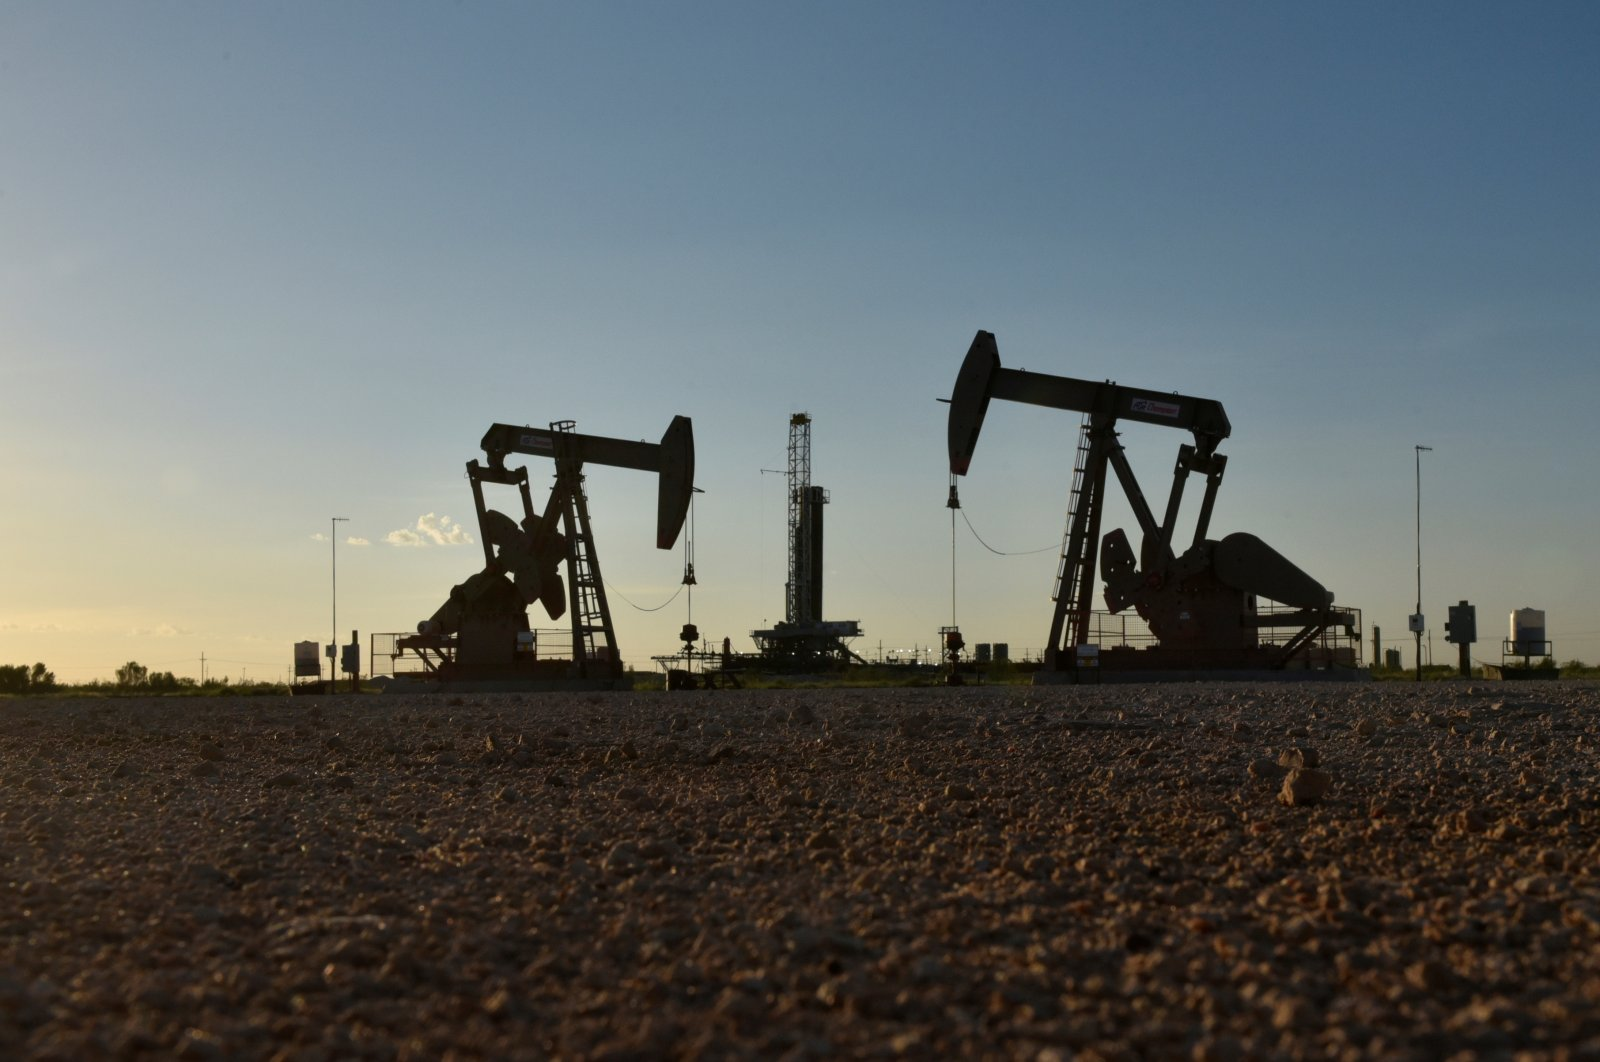 Pump jacks operate in front of a drilling rig in an oil field in Midland, Texas, U.S. Aug. 22, 2018. (Reuters Photo)